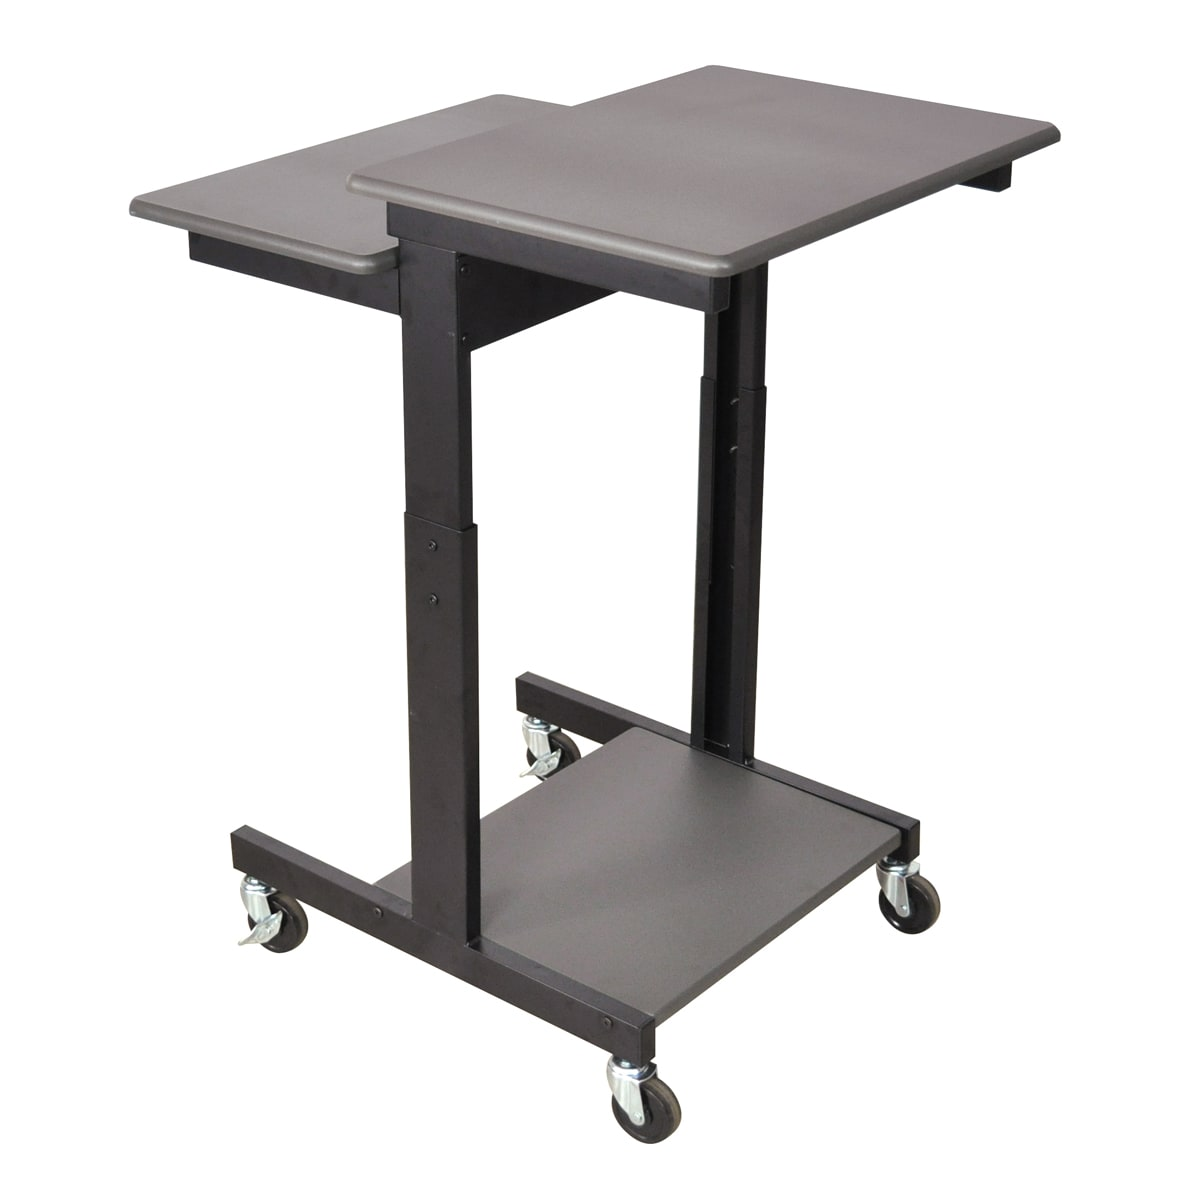 Bon Wheeled Computer Table Workstation Desk Steel Lower Shelf Adjustable Height